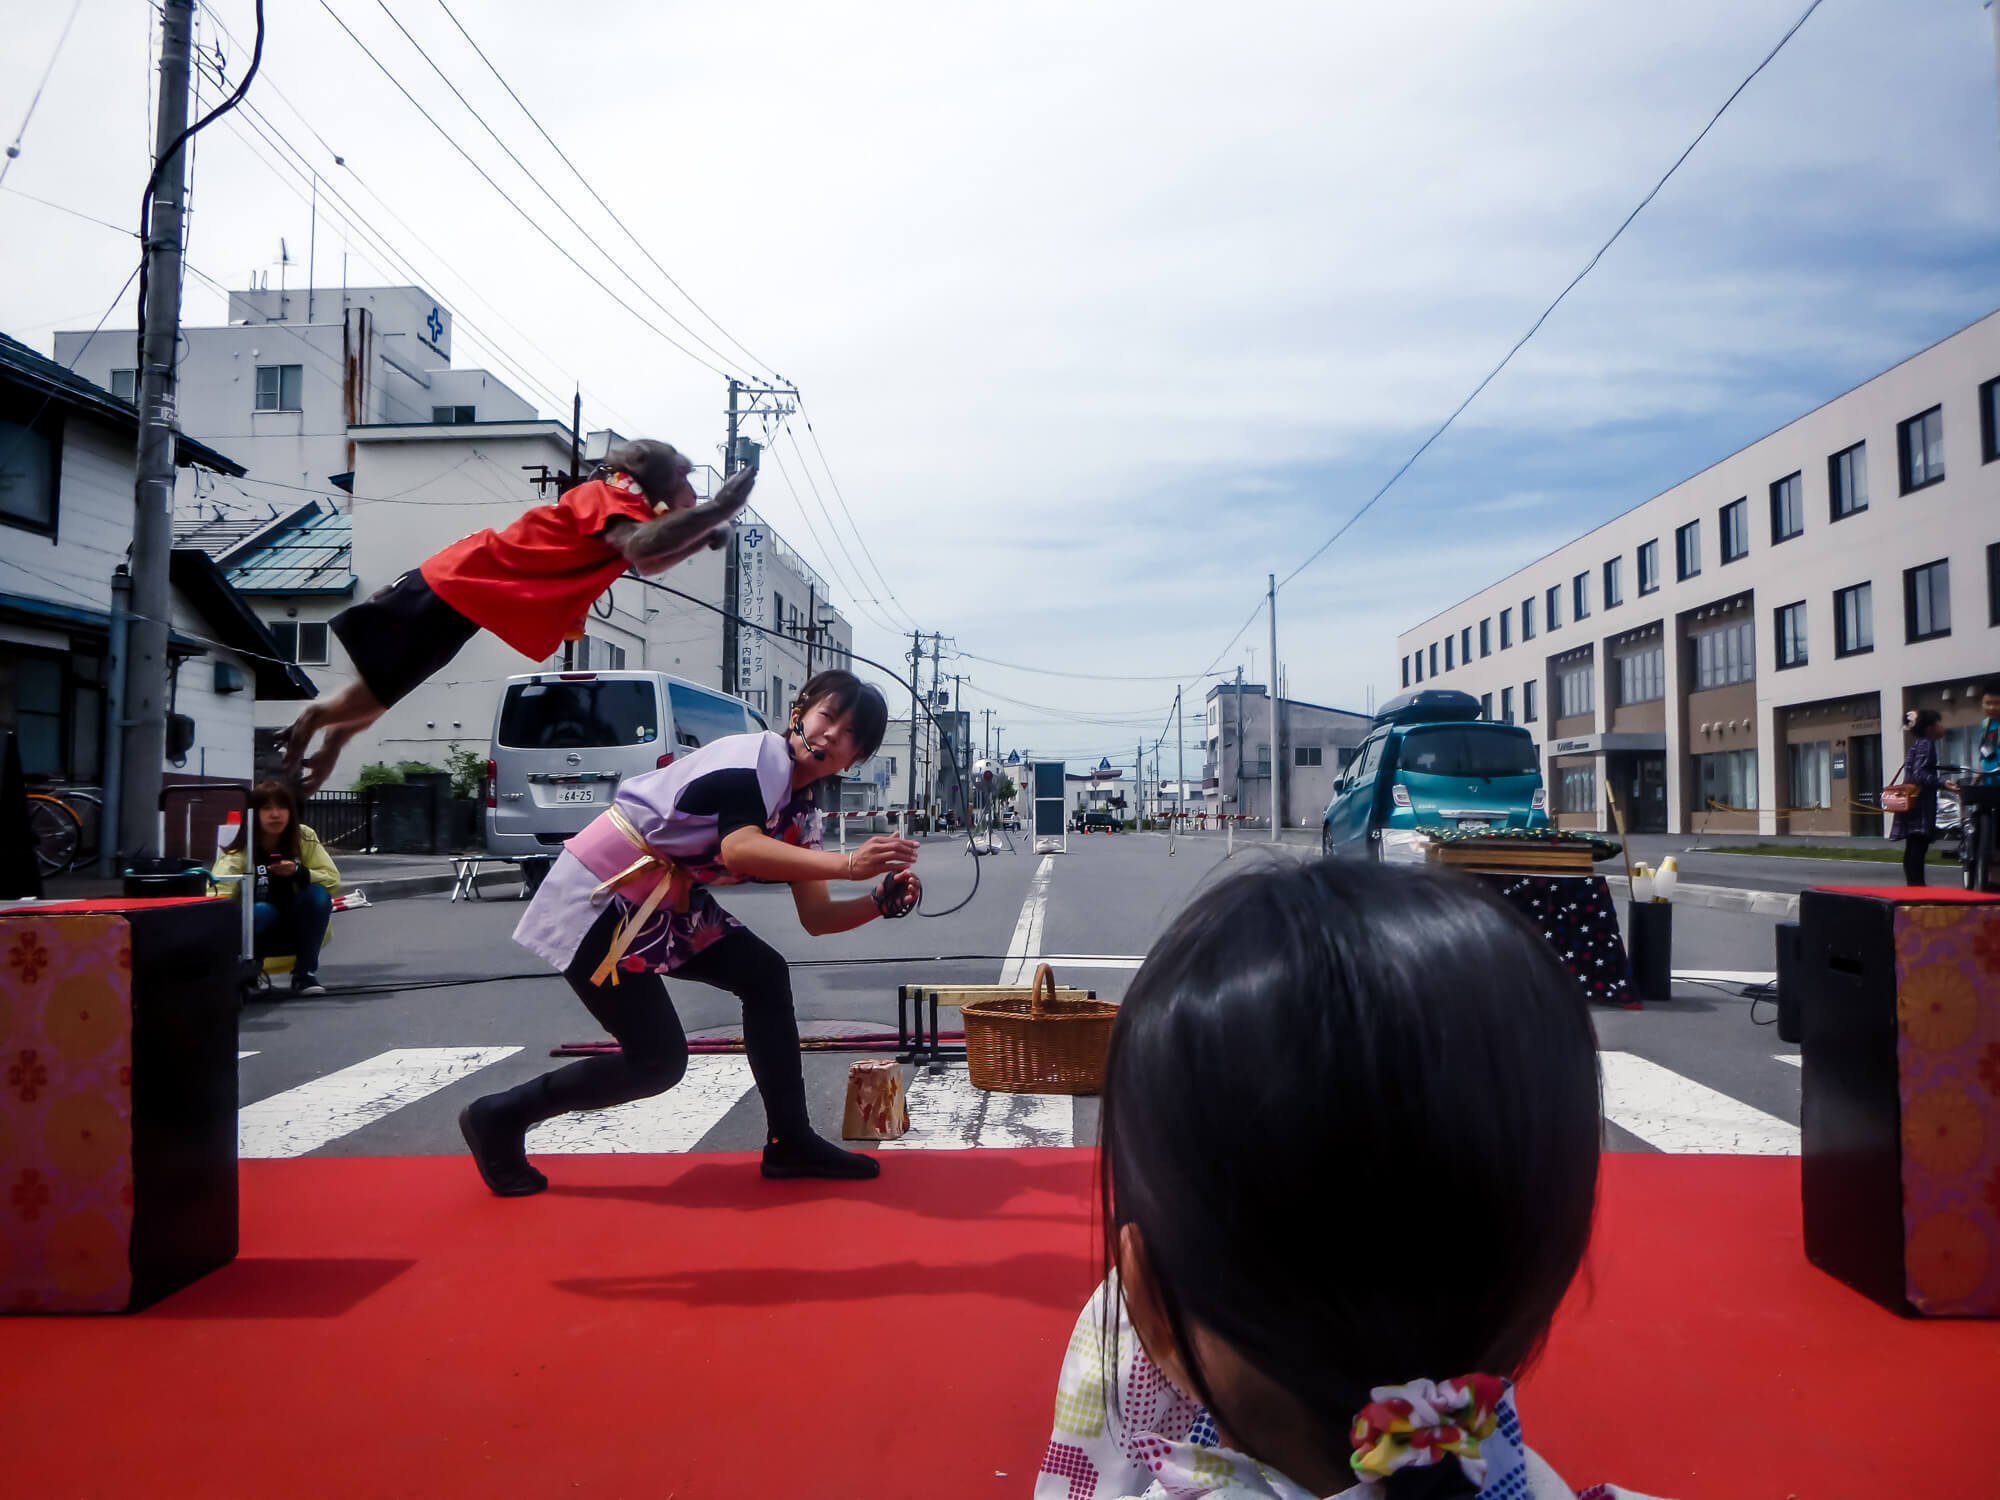 A performing monkey busking in Japan - example of animal cruelty in entertainment